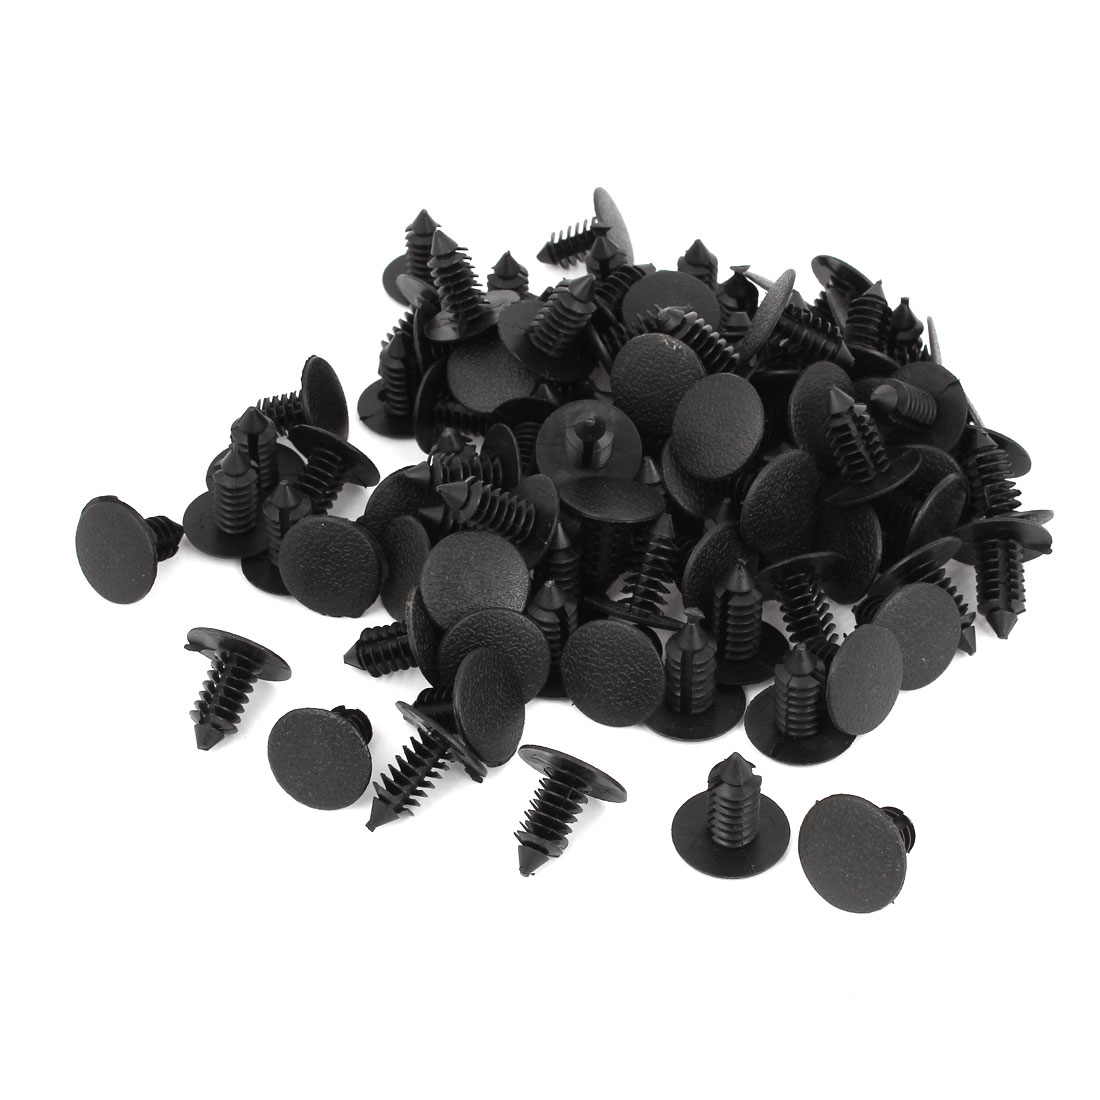 Black 7mm Hole Vehicle Car Door Plastic Rivet Fastener Trim Panel Retainer Clip 100pcs